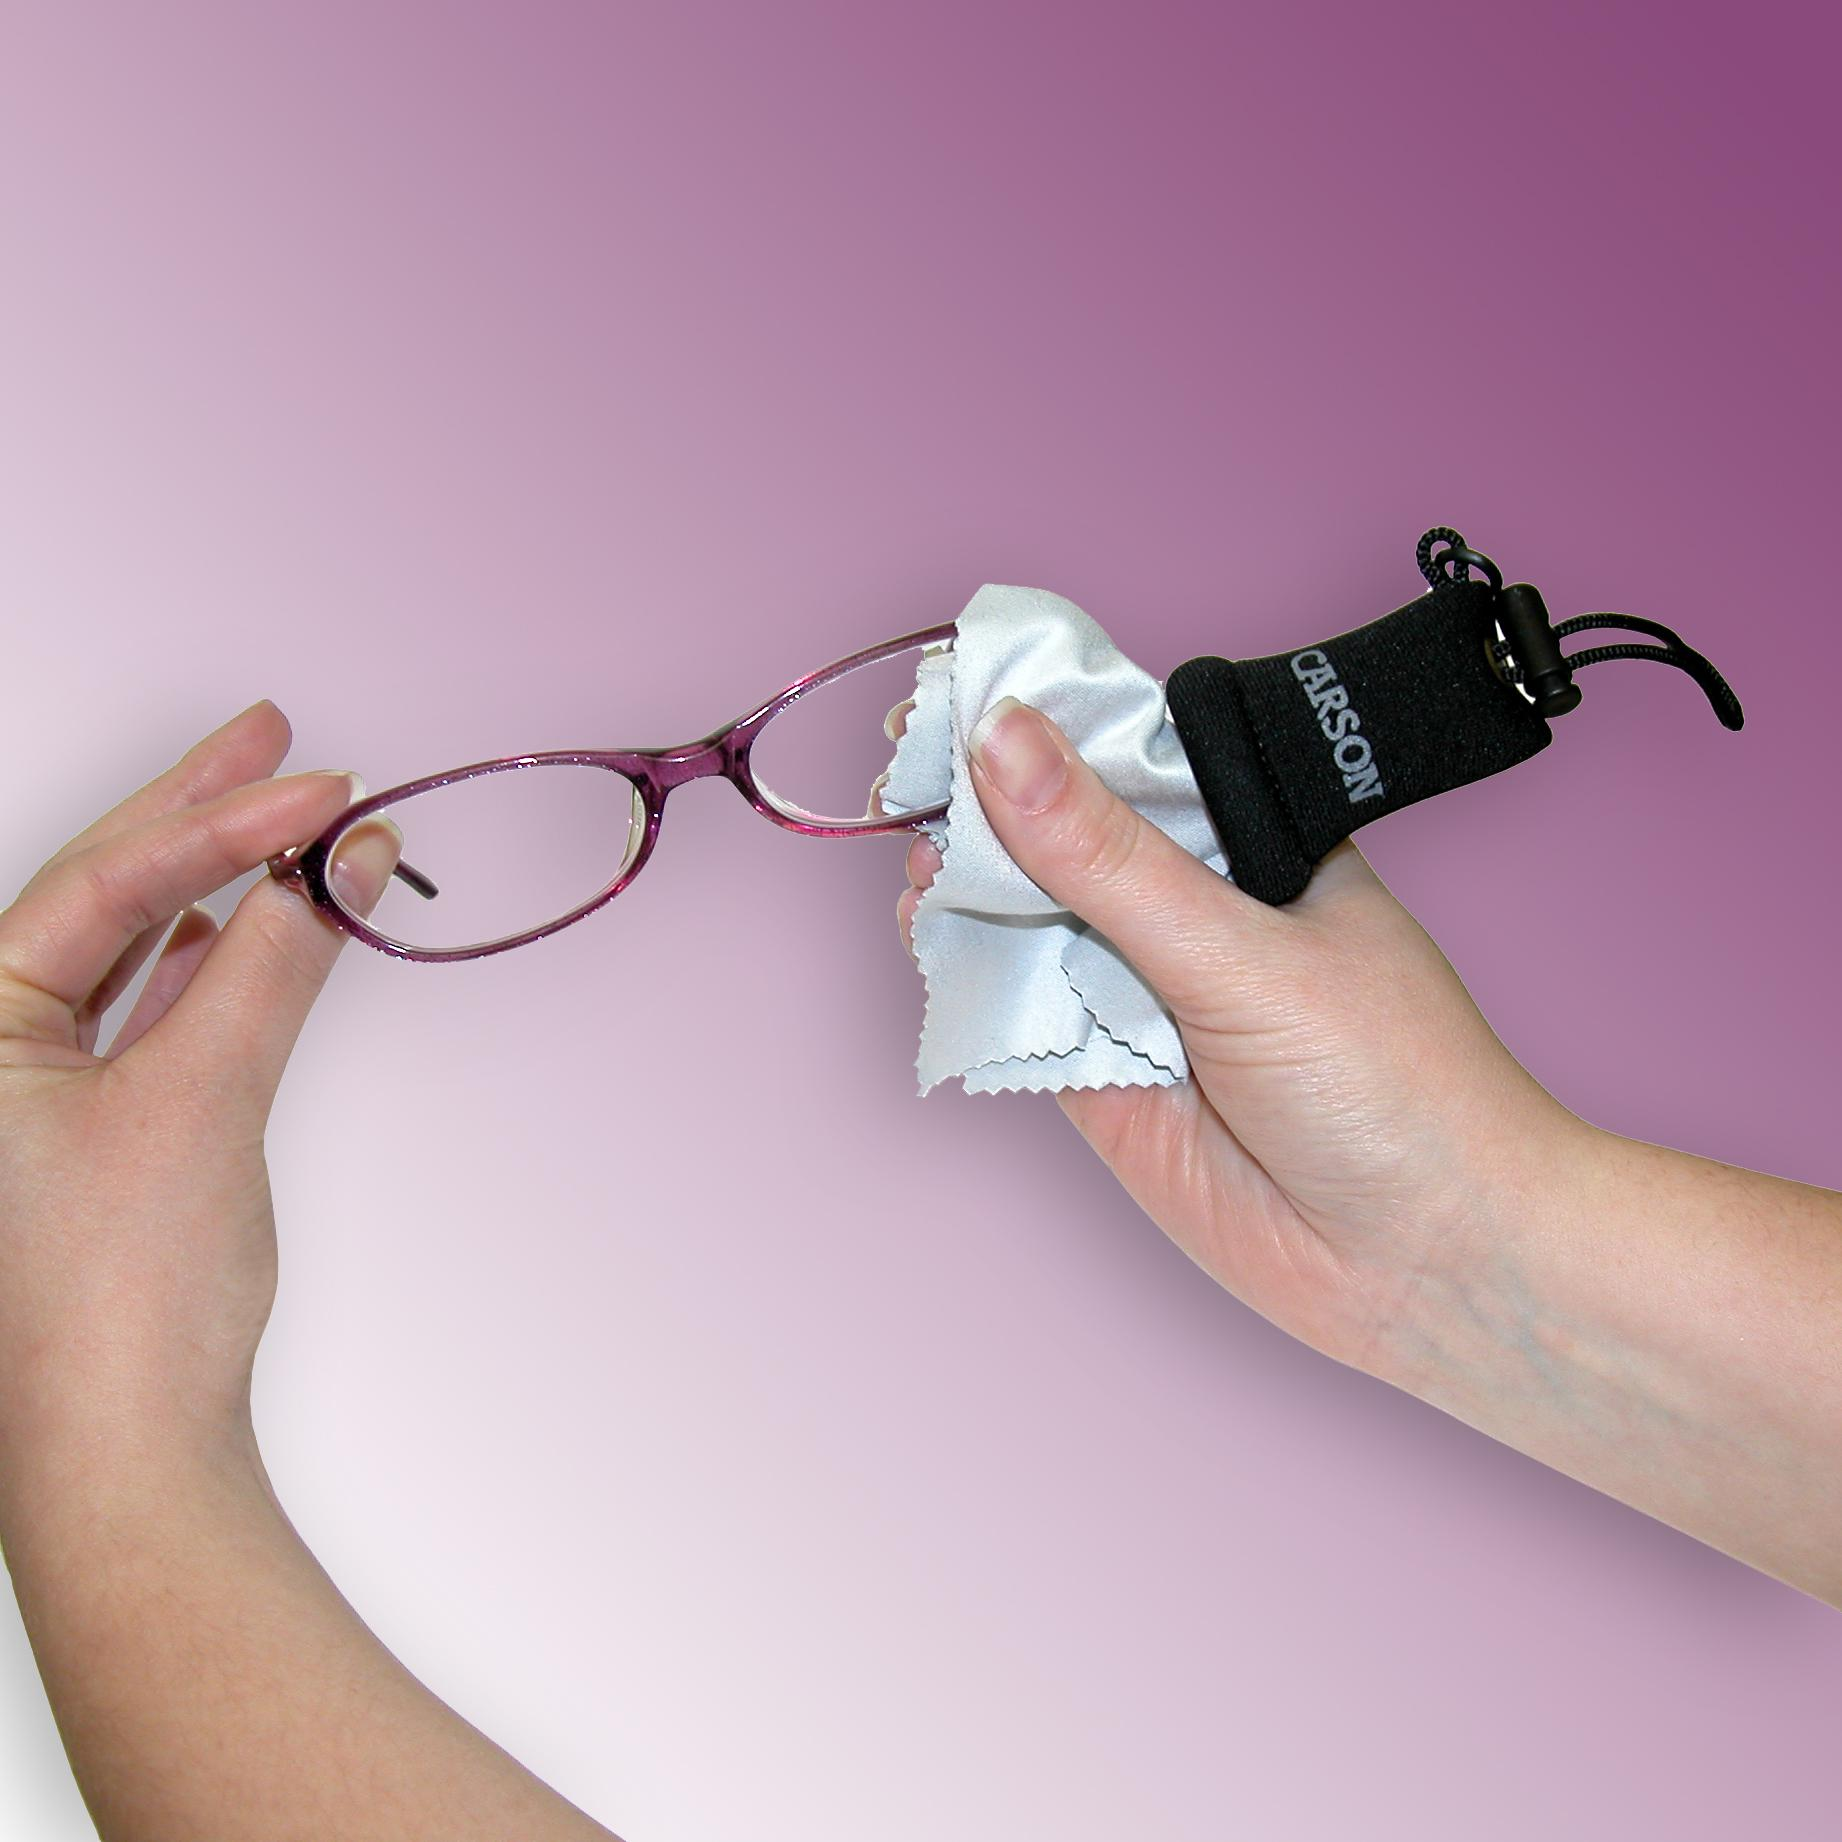 Tips on eyewear care and cleaning for specs wearers